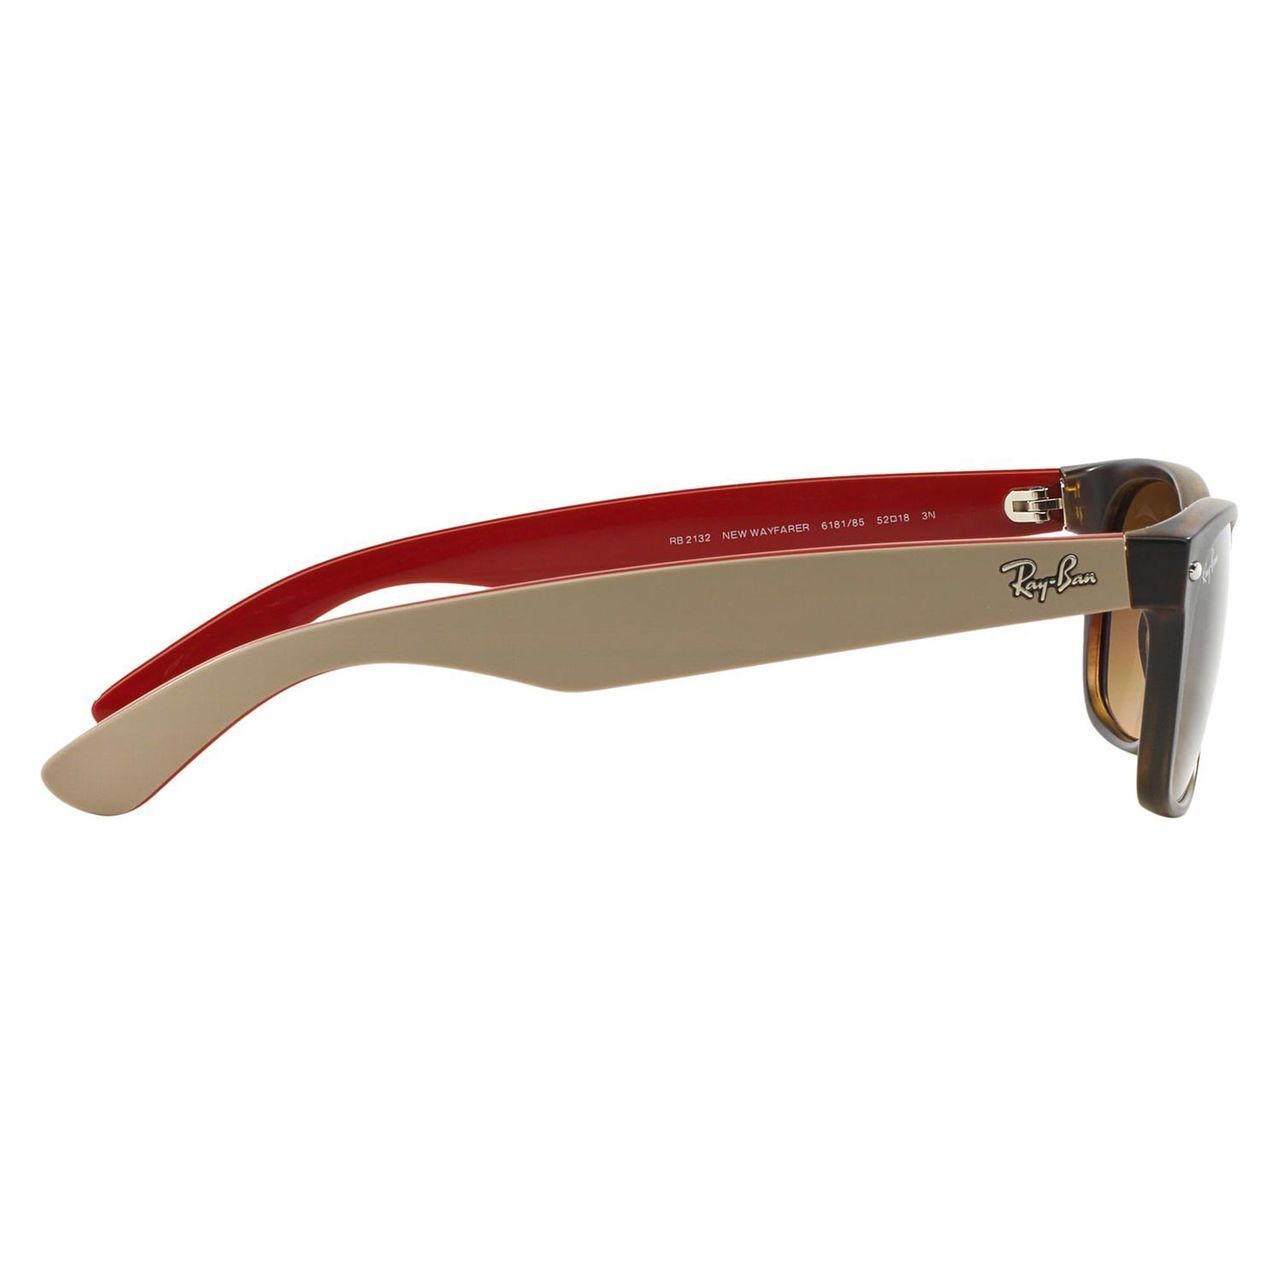 b04e2ef5ff Shop Ray-Ban Men s RB2132 Tortoise Plastic Square Sunglasses - Free  Shipping Today - Overstock - 10485274